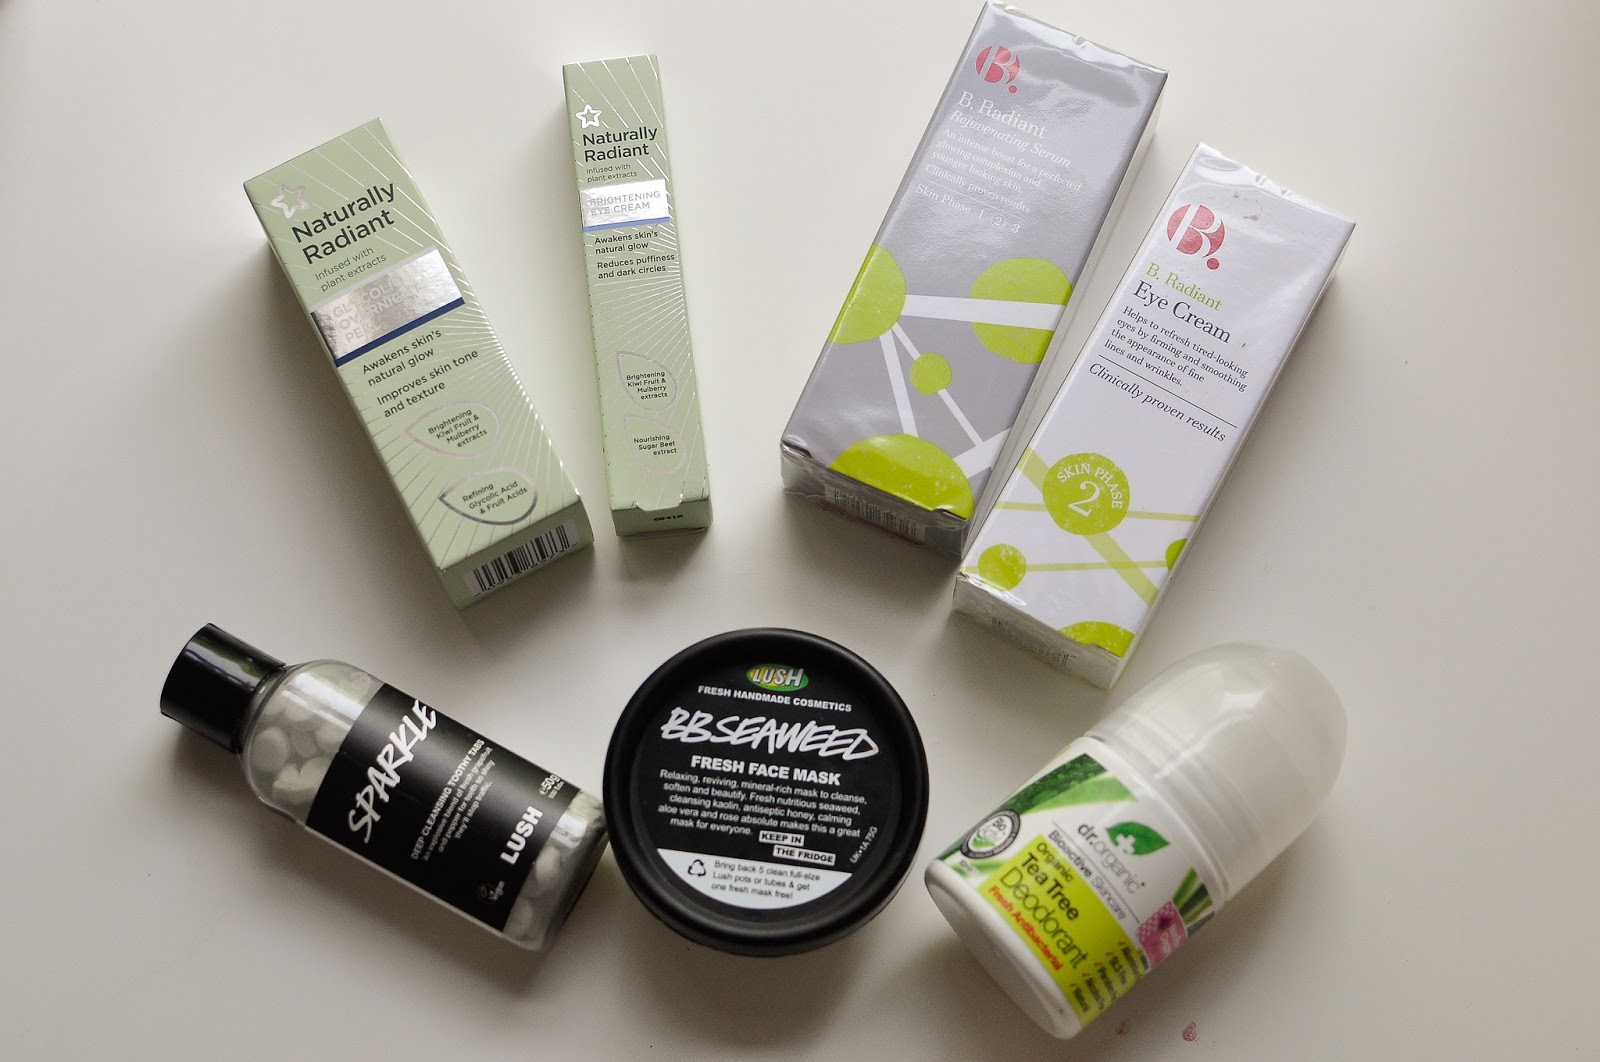 Cruelty free skincare, deodorant and toothpaste